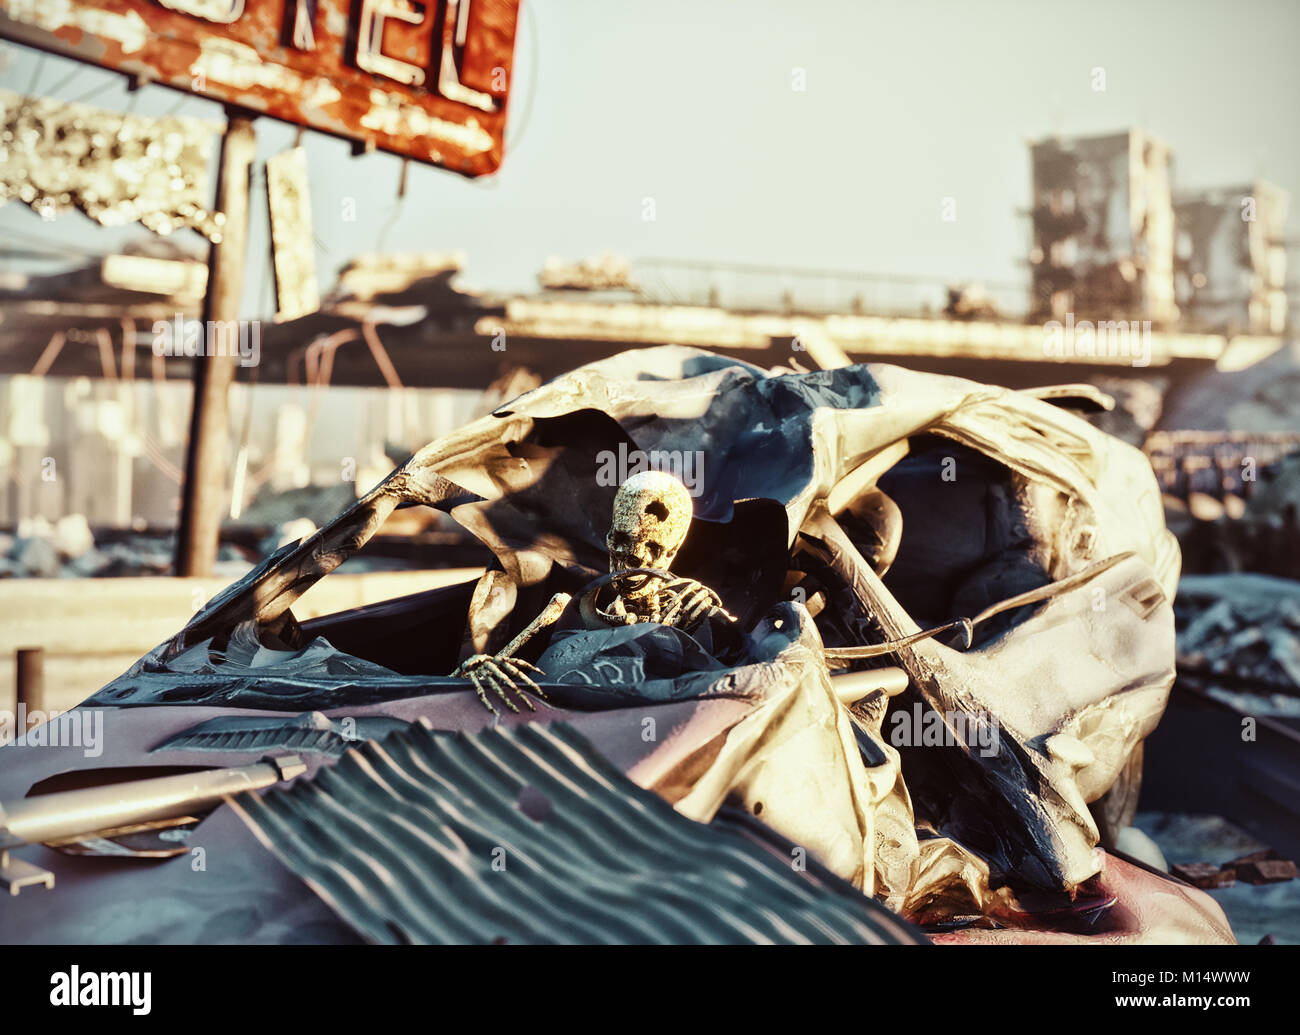 Skeleton in the car .Ruins of a city highway. Apocalyptic landscape.3d illustration concept - Stock Image